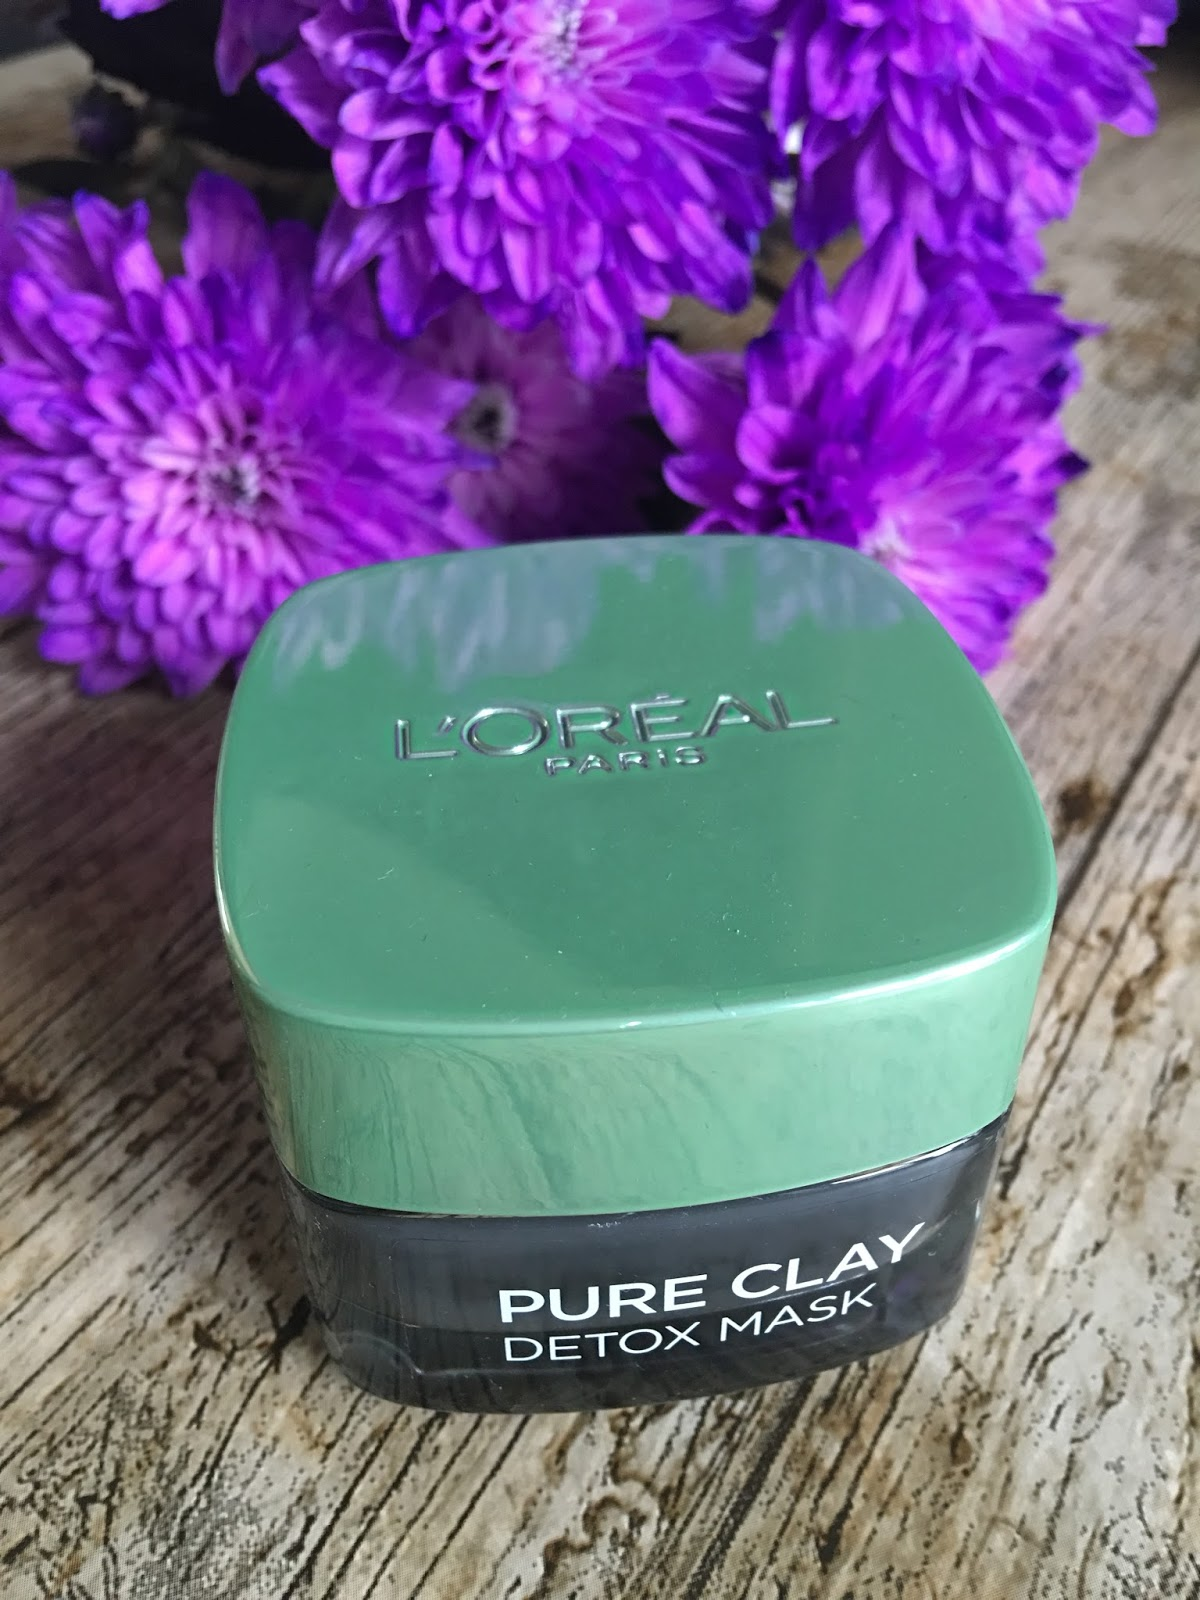 L'oreal pure clay detox mask review